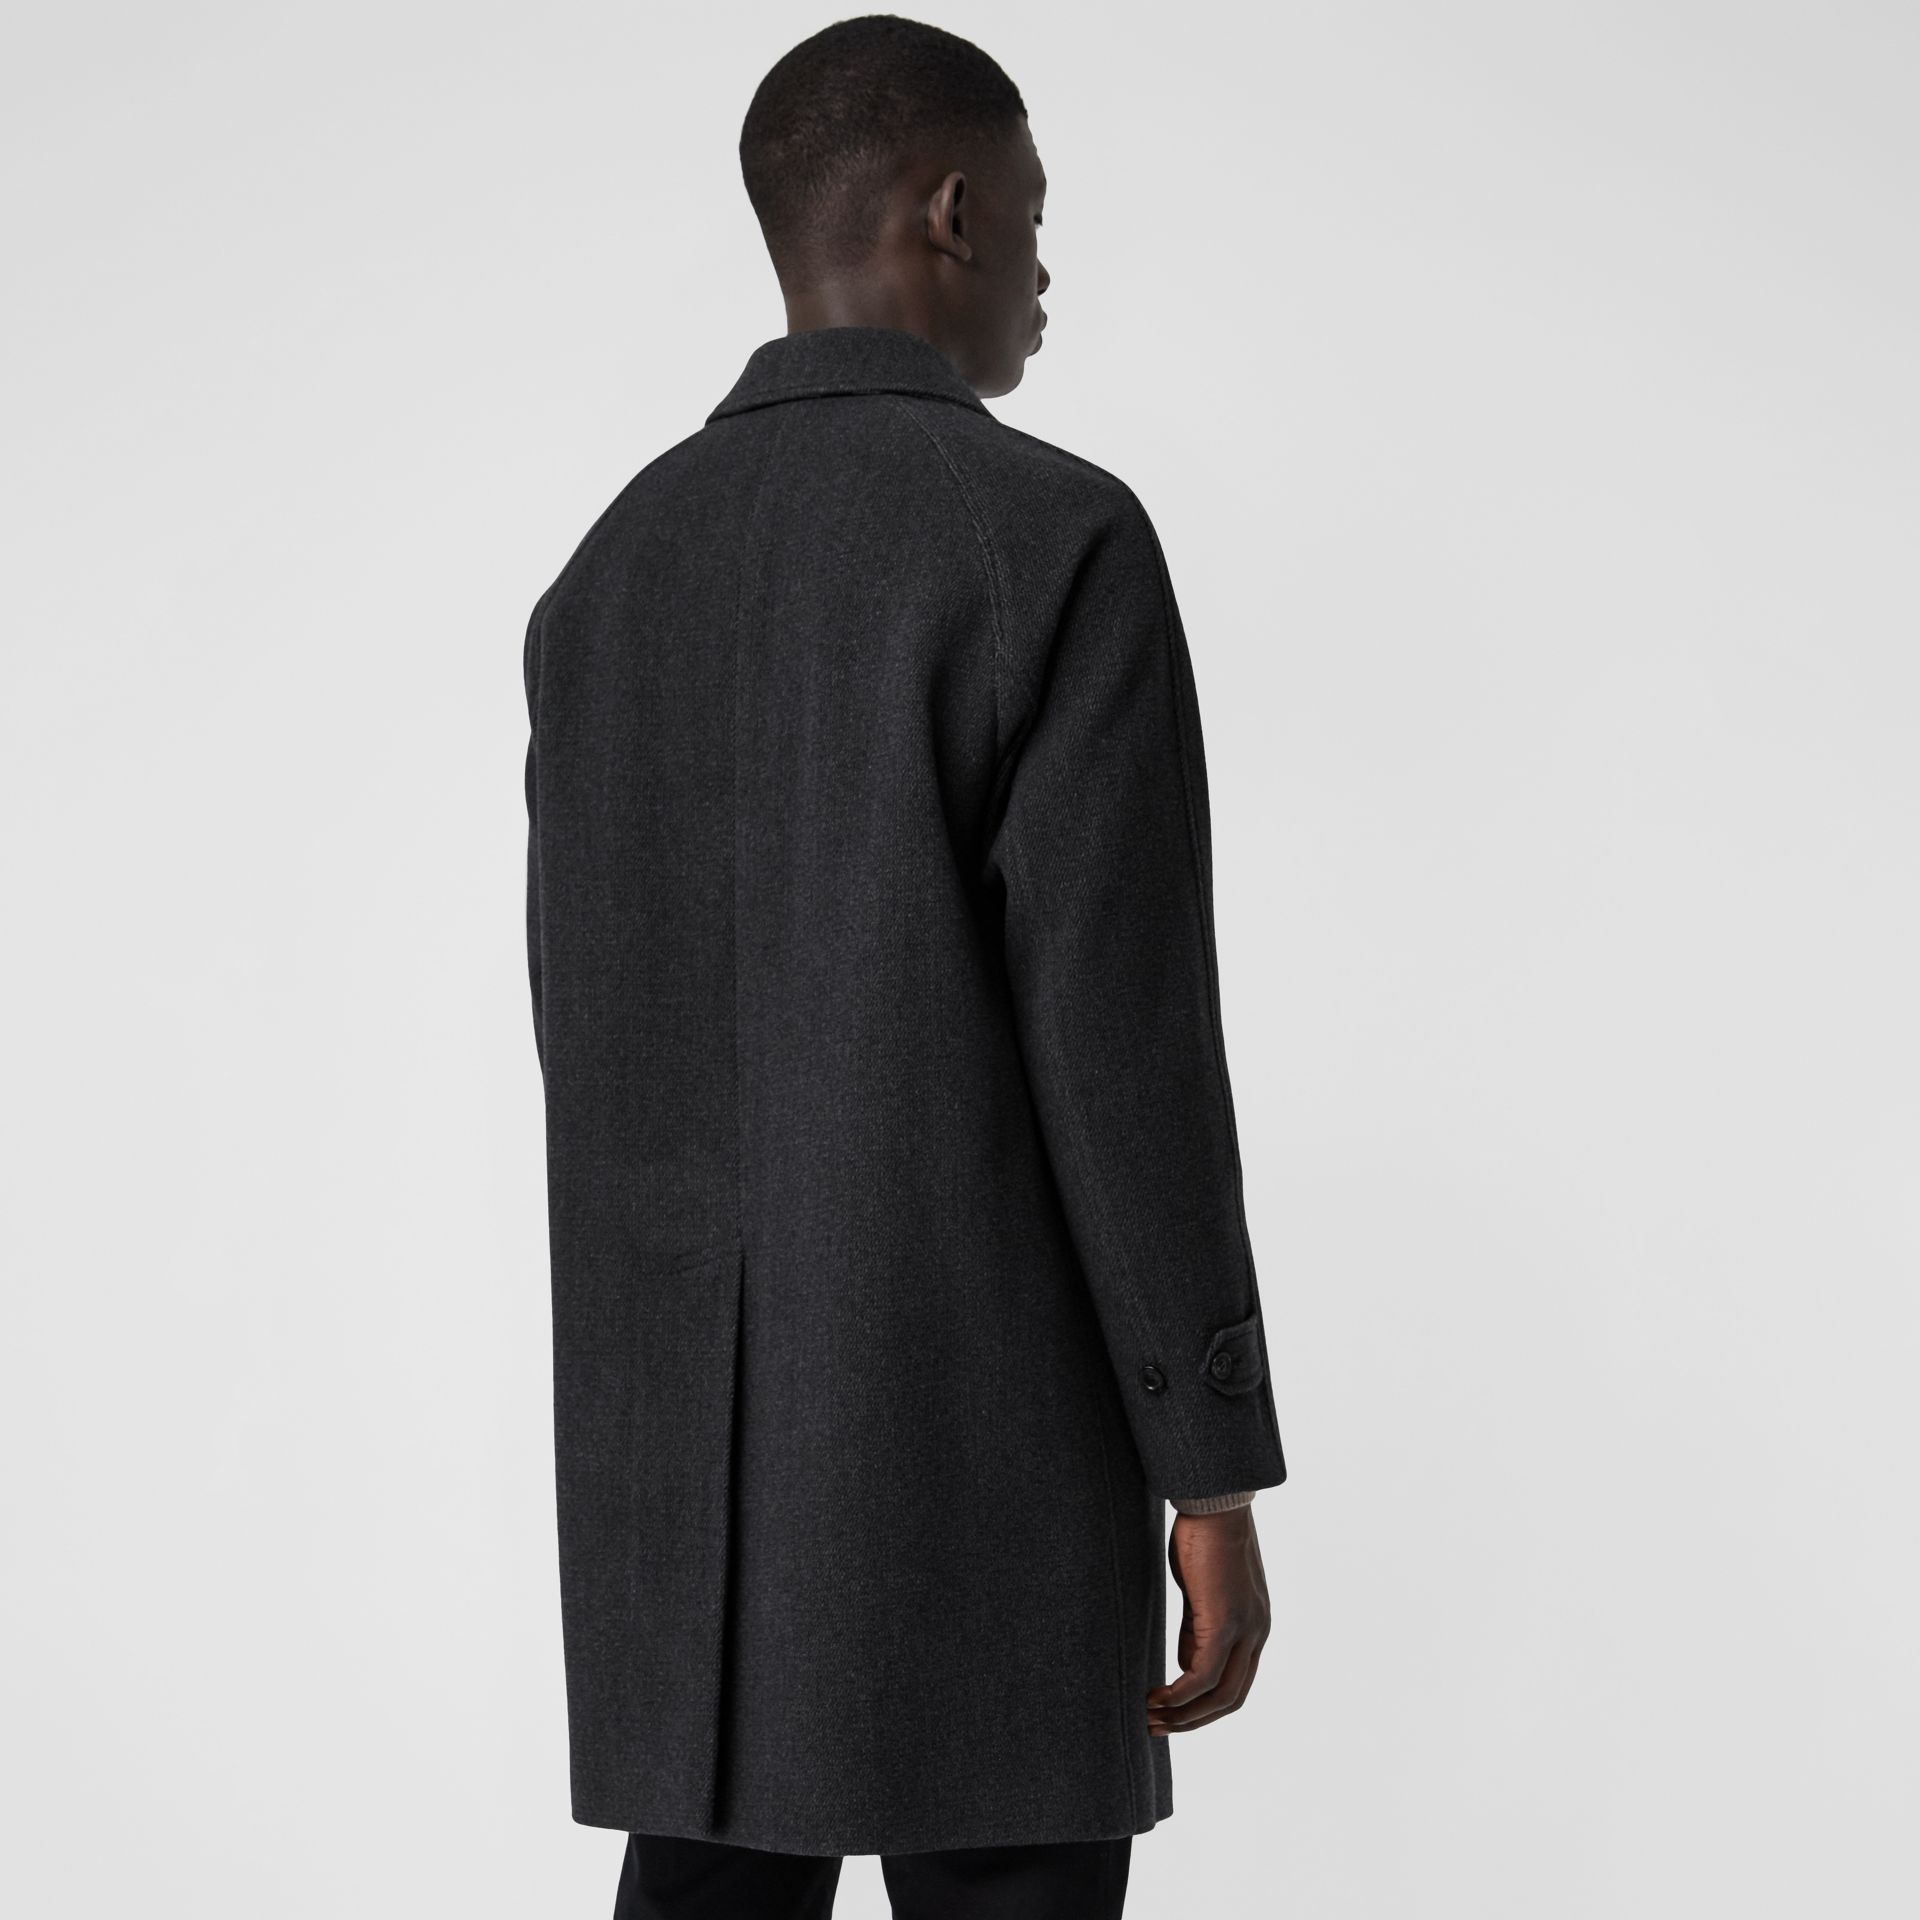 Wool Cashmere Blend Car Coat in Charcoal - Men | Burberry - gallery image 2